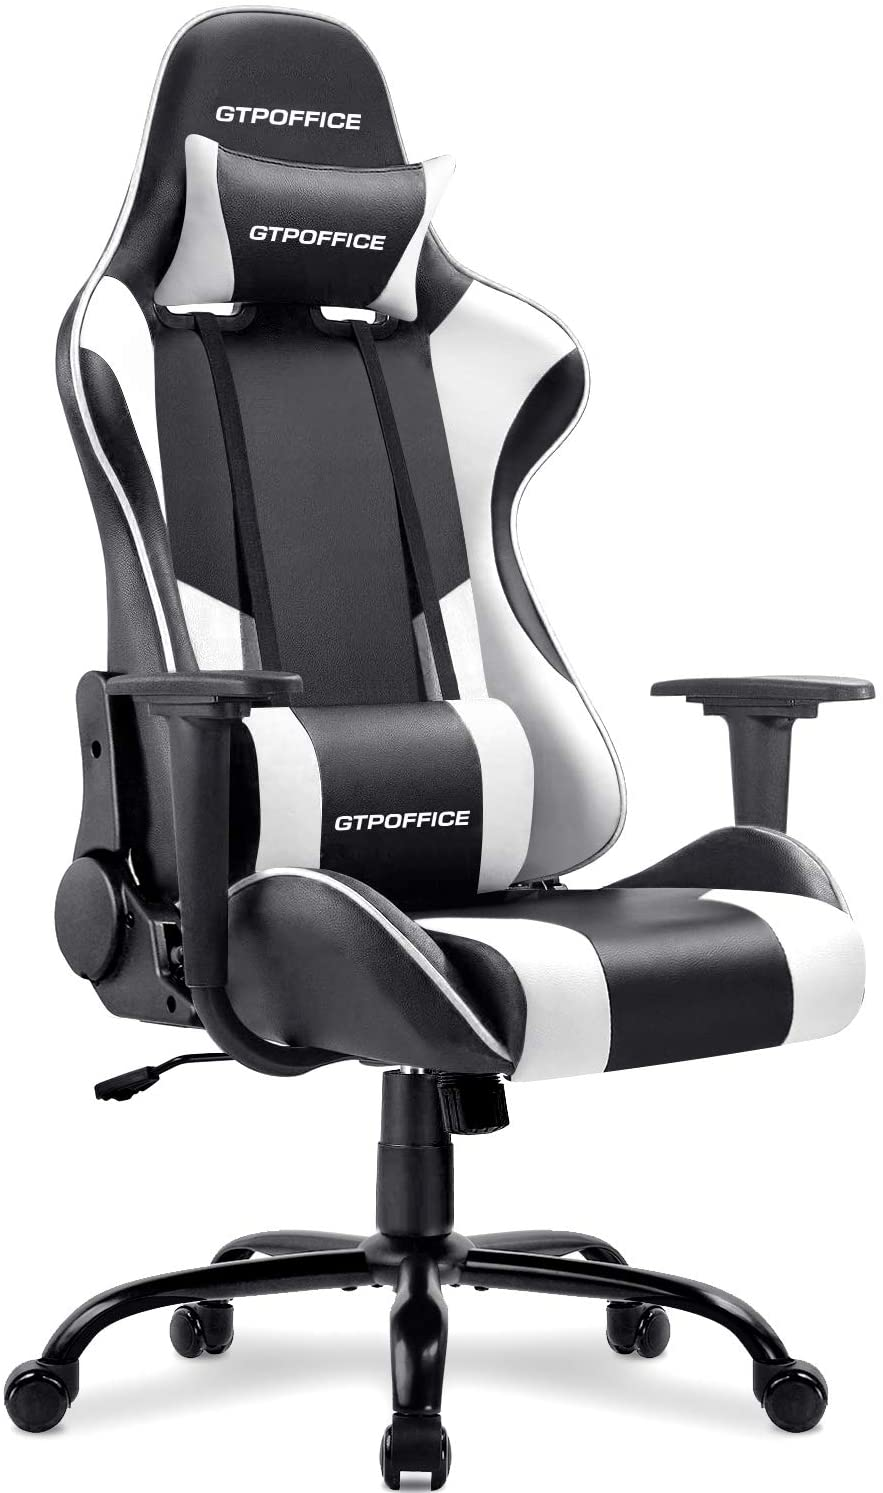 Top 5 Best Gaming Chairs under $100 3